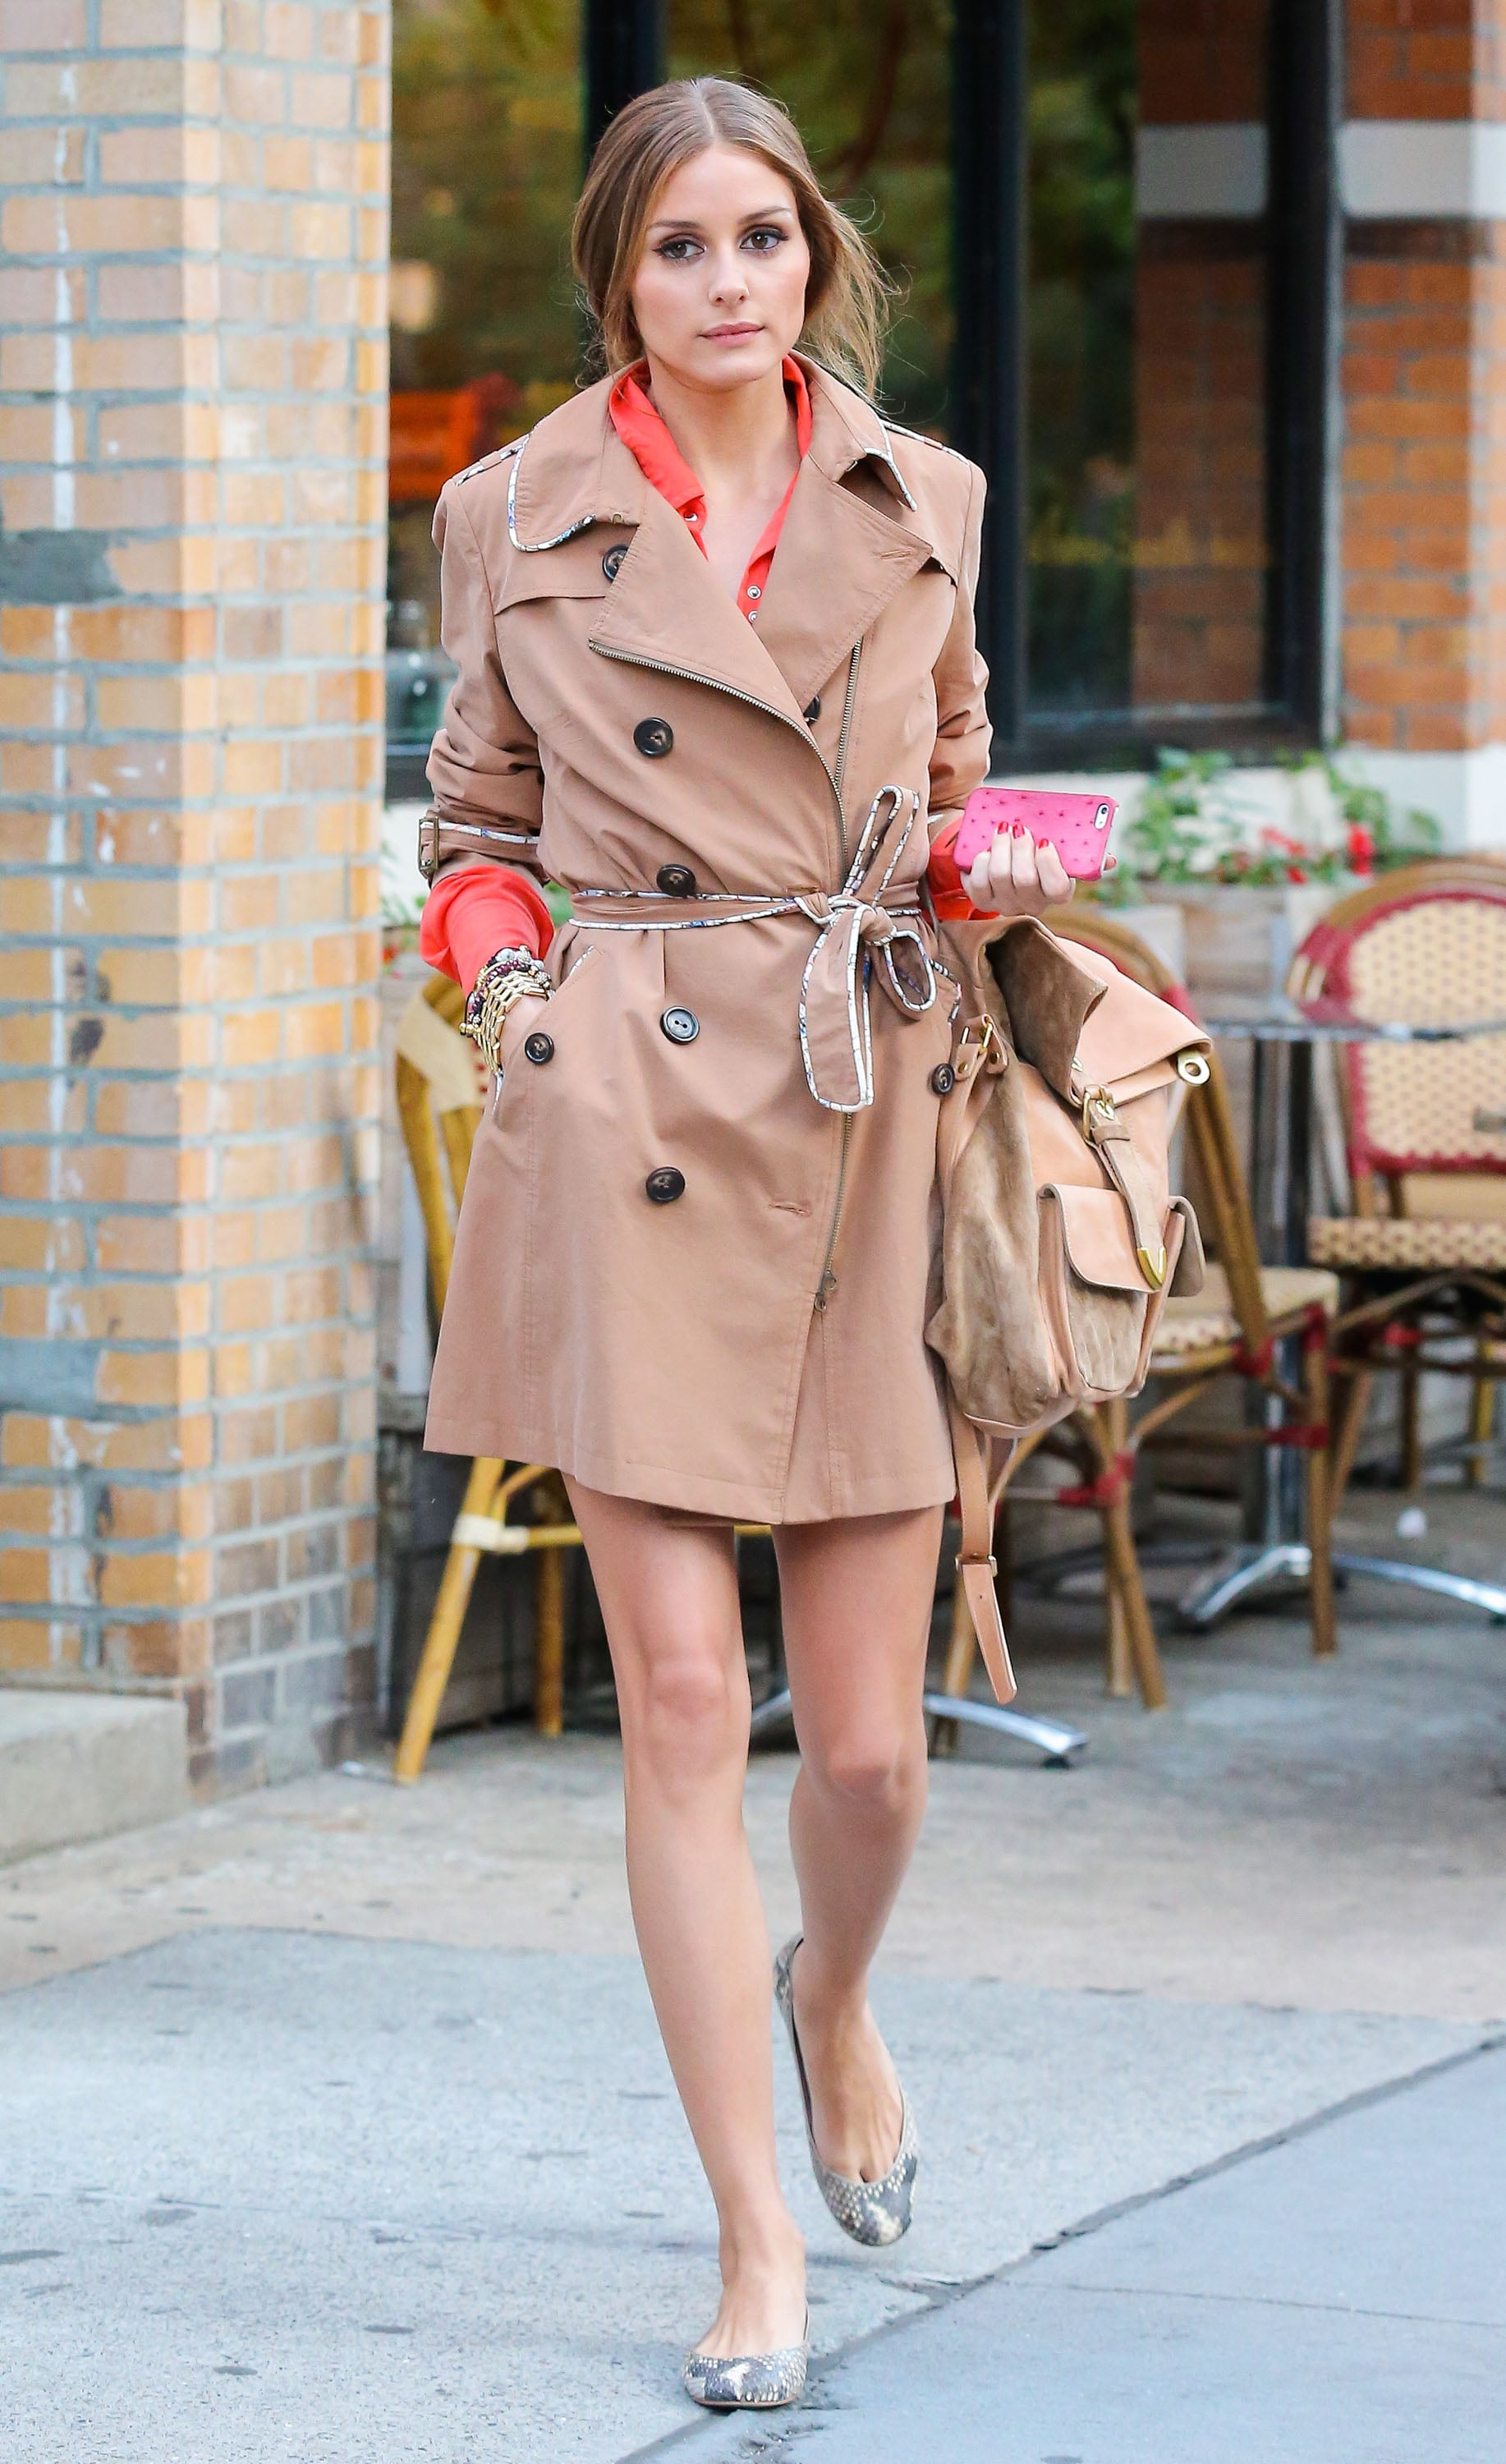 While out to lunch in NYC, Olivia Palermo layered up in a chic trench coat with cool piping then finished with snakeskin flats.